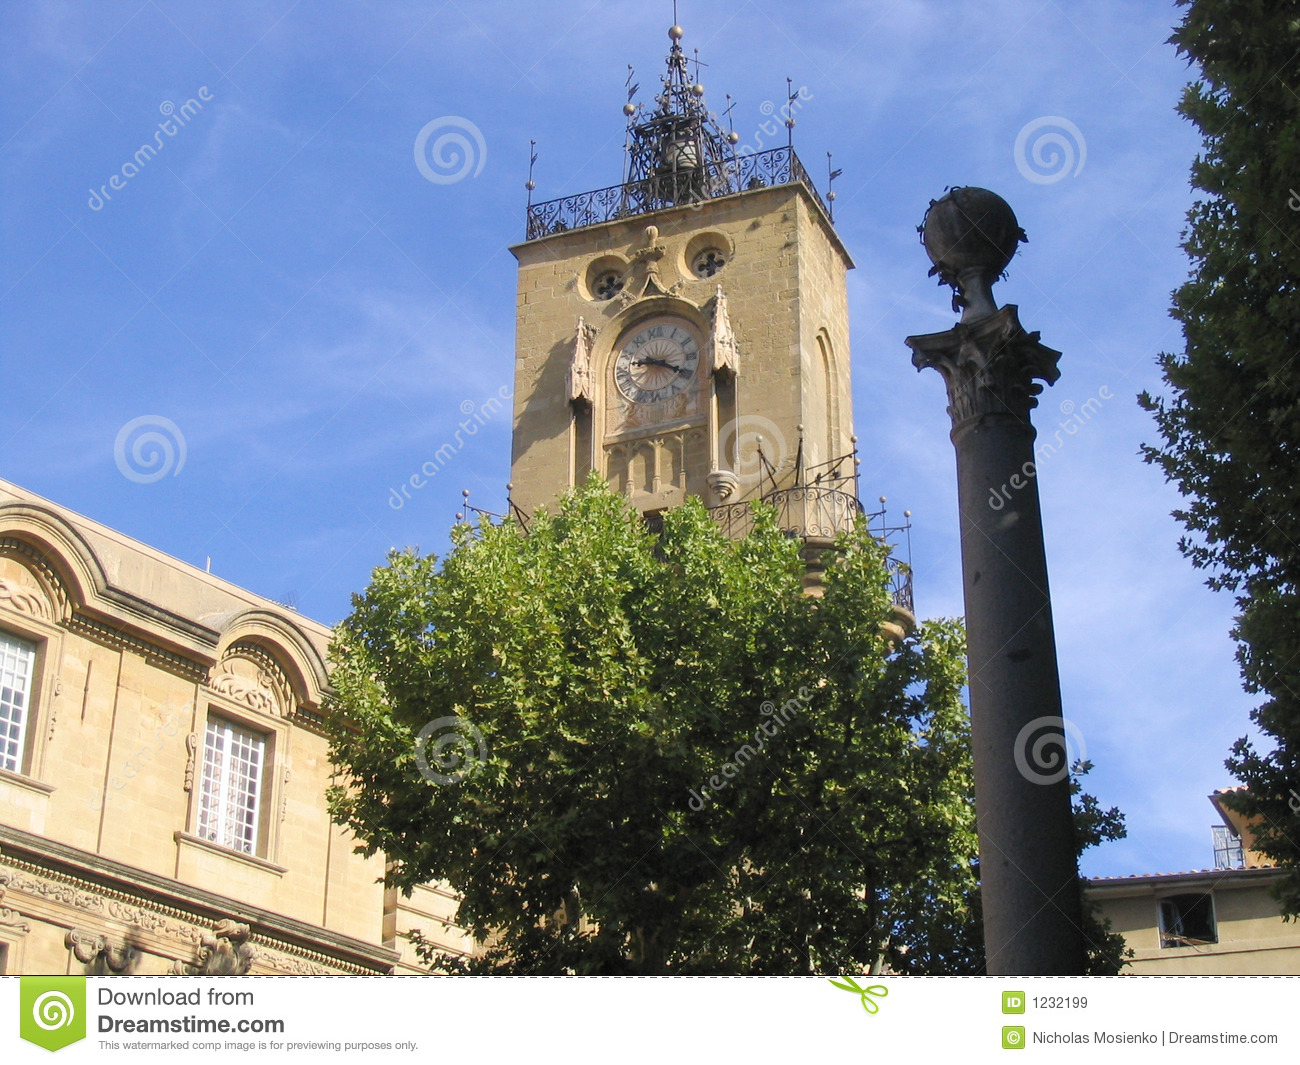 Stone Aix En Provence clock tower, aix-en-provence, france stock image - image of